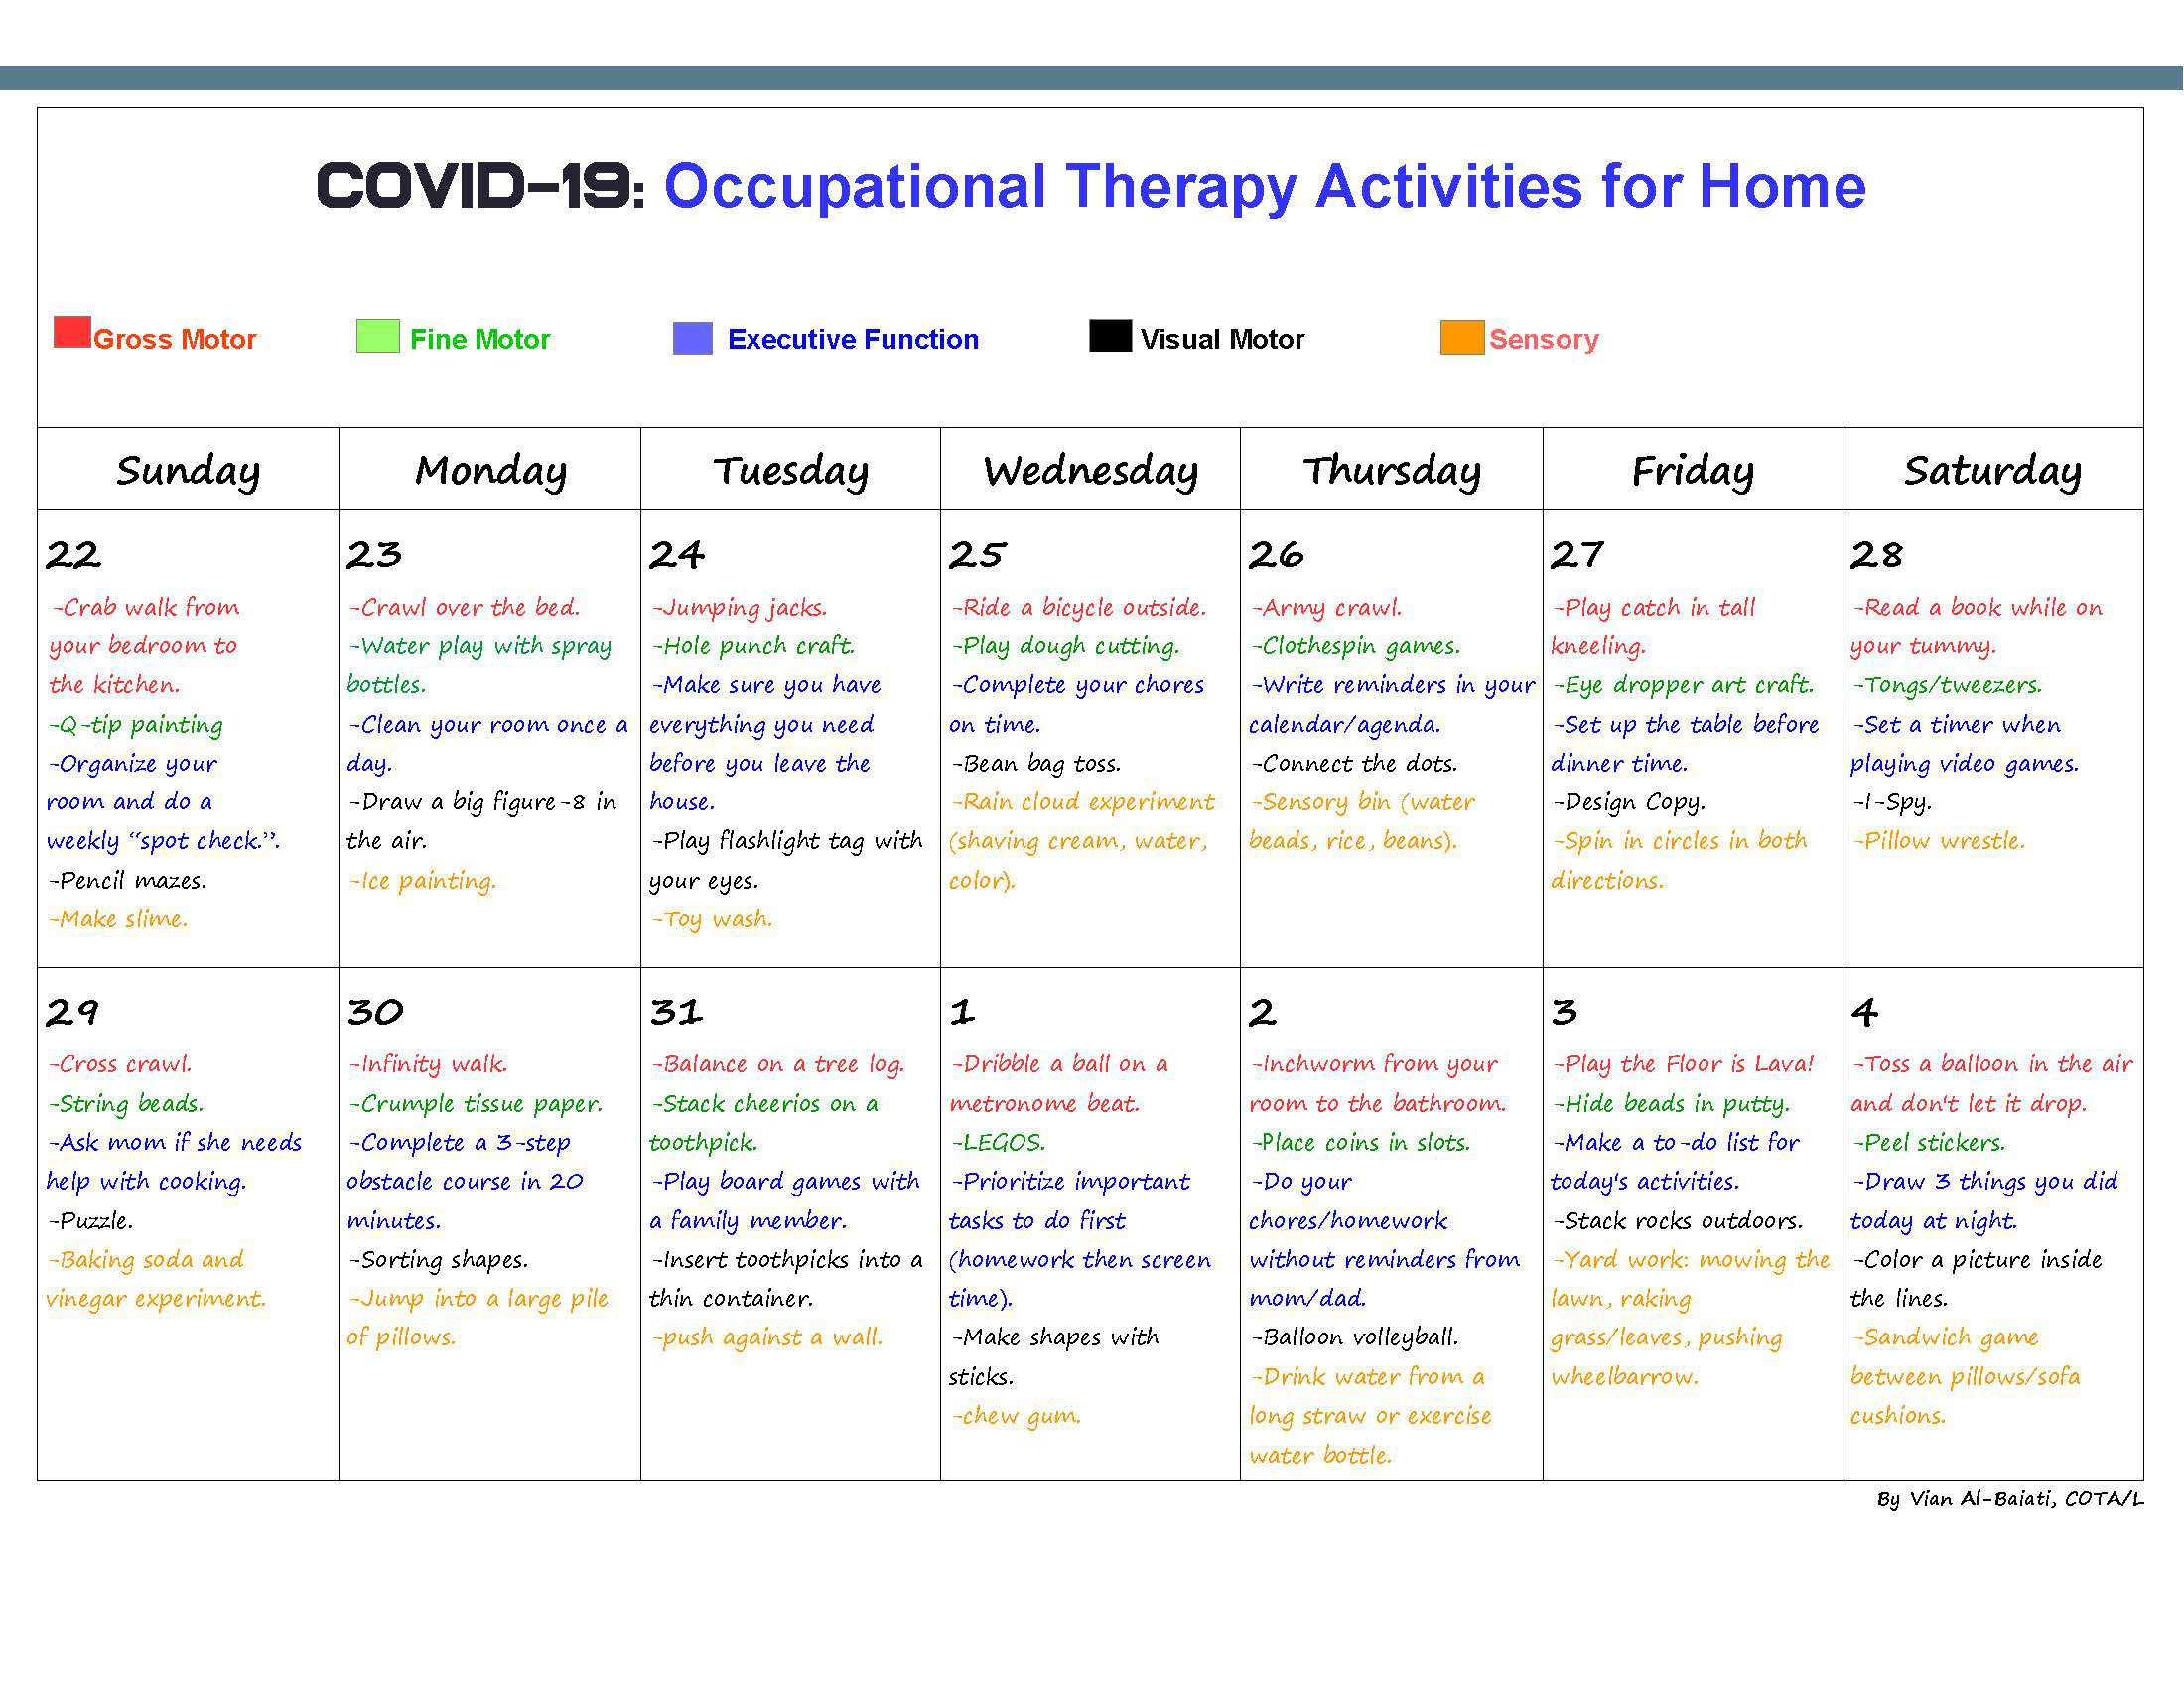 COVID-19: Occupational Therapy Activities for Home page 1